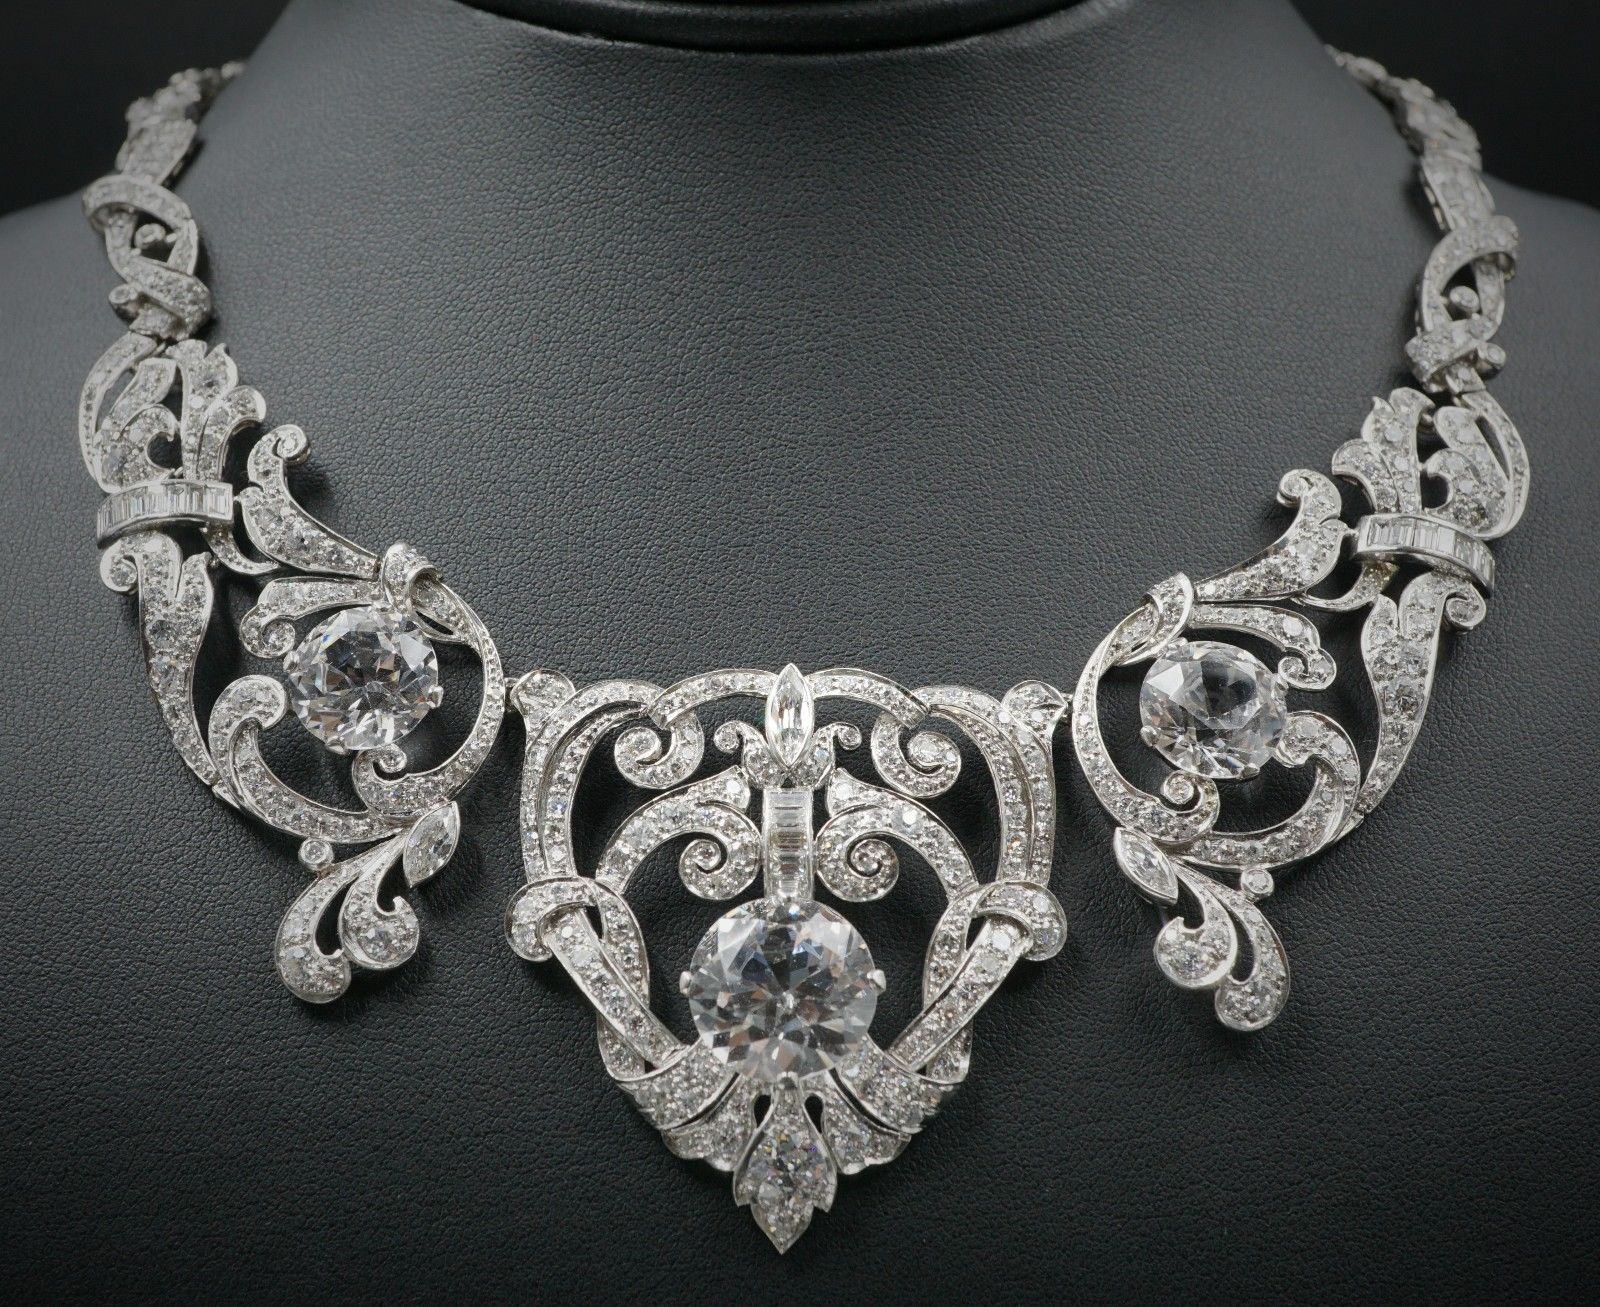 Necklace: ladies platinum Edwardian era Art Deco design open filigree natural diamond and imitation diamond link necklace, fastening with a fold-over locking clasp | 568 diamonds | 12.9 carats | Appraisal: $188,500